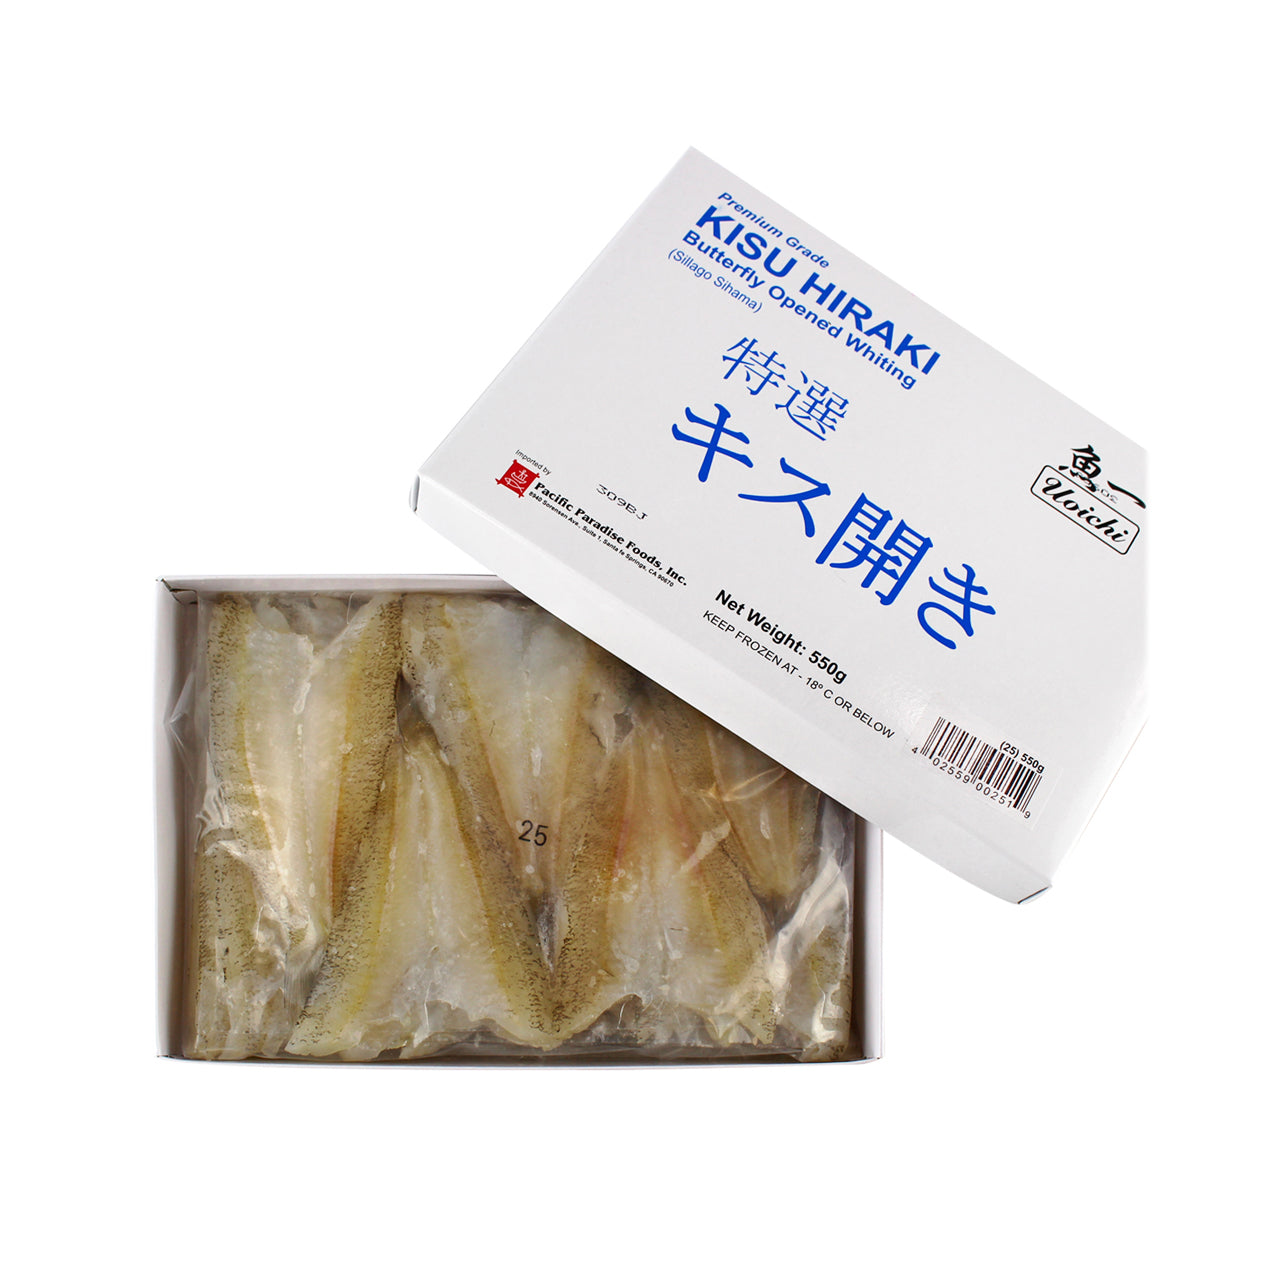 Kisu Hiraki Whiting Butterfly Cut 25 pieces, 19.4oz (545g) (SKU: 73432)